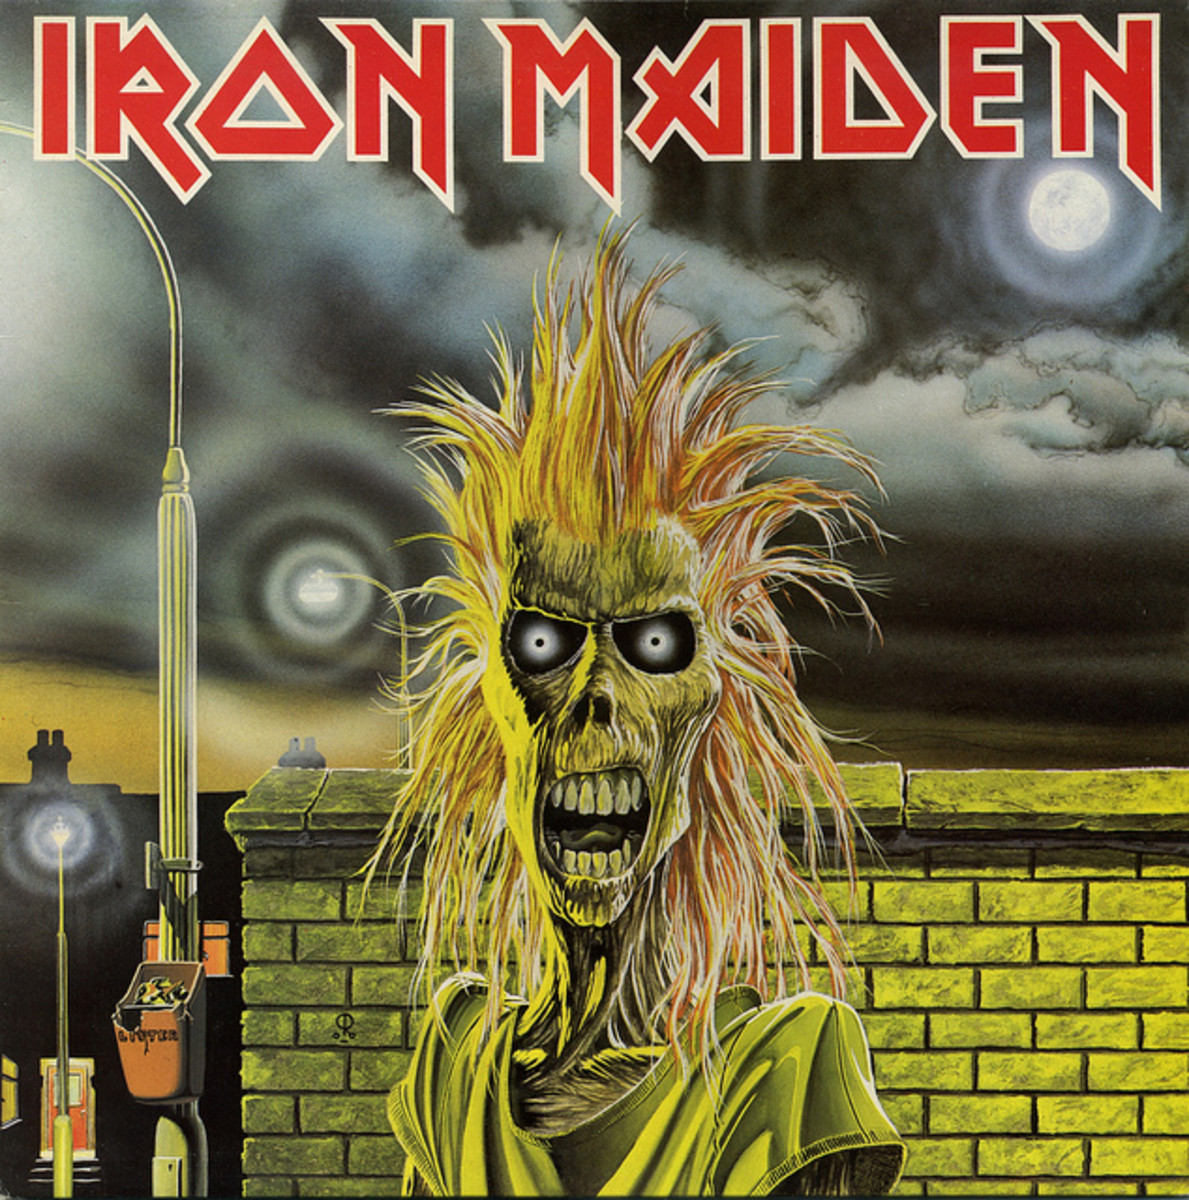 "Iron Maiden ""Iron Maiden"" Capitol Records C1-91415 12"" LP Vinyl Record  U.S. Pressing (1980)  Album Cover Art by Derek Riggs"